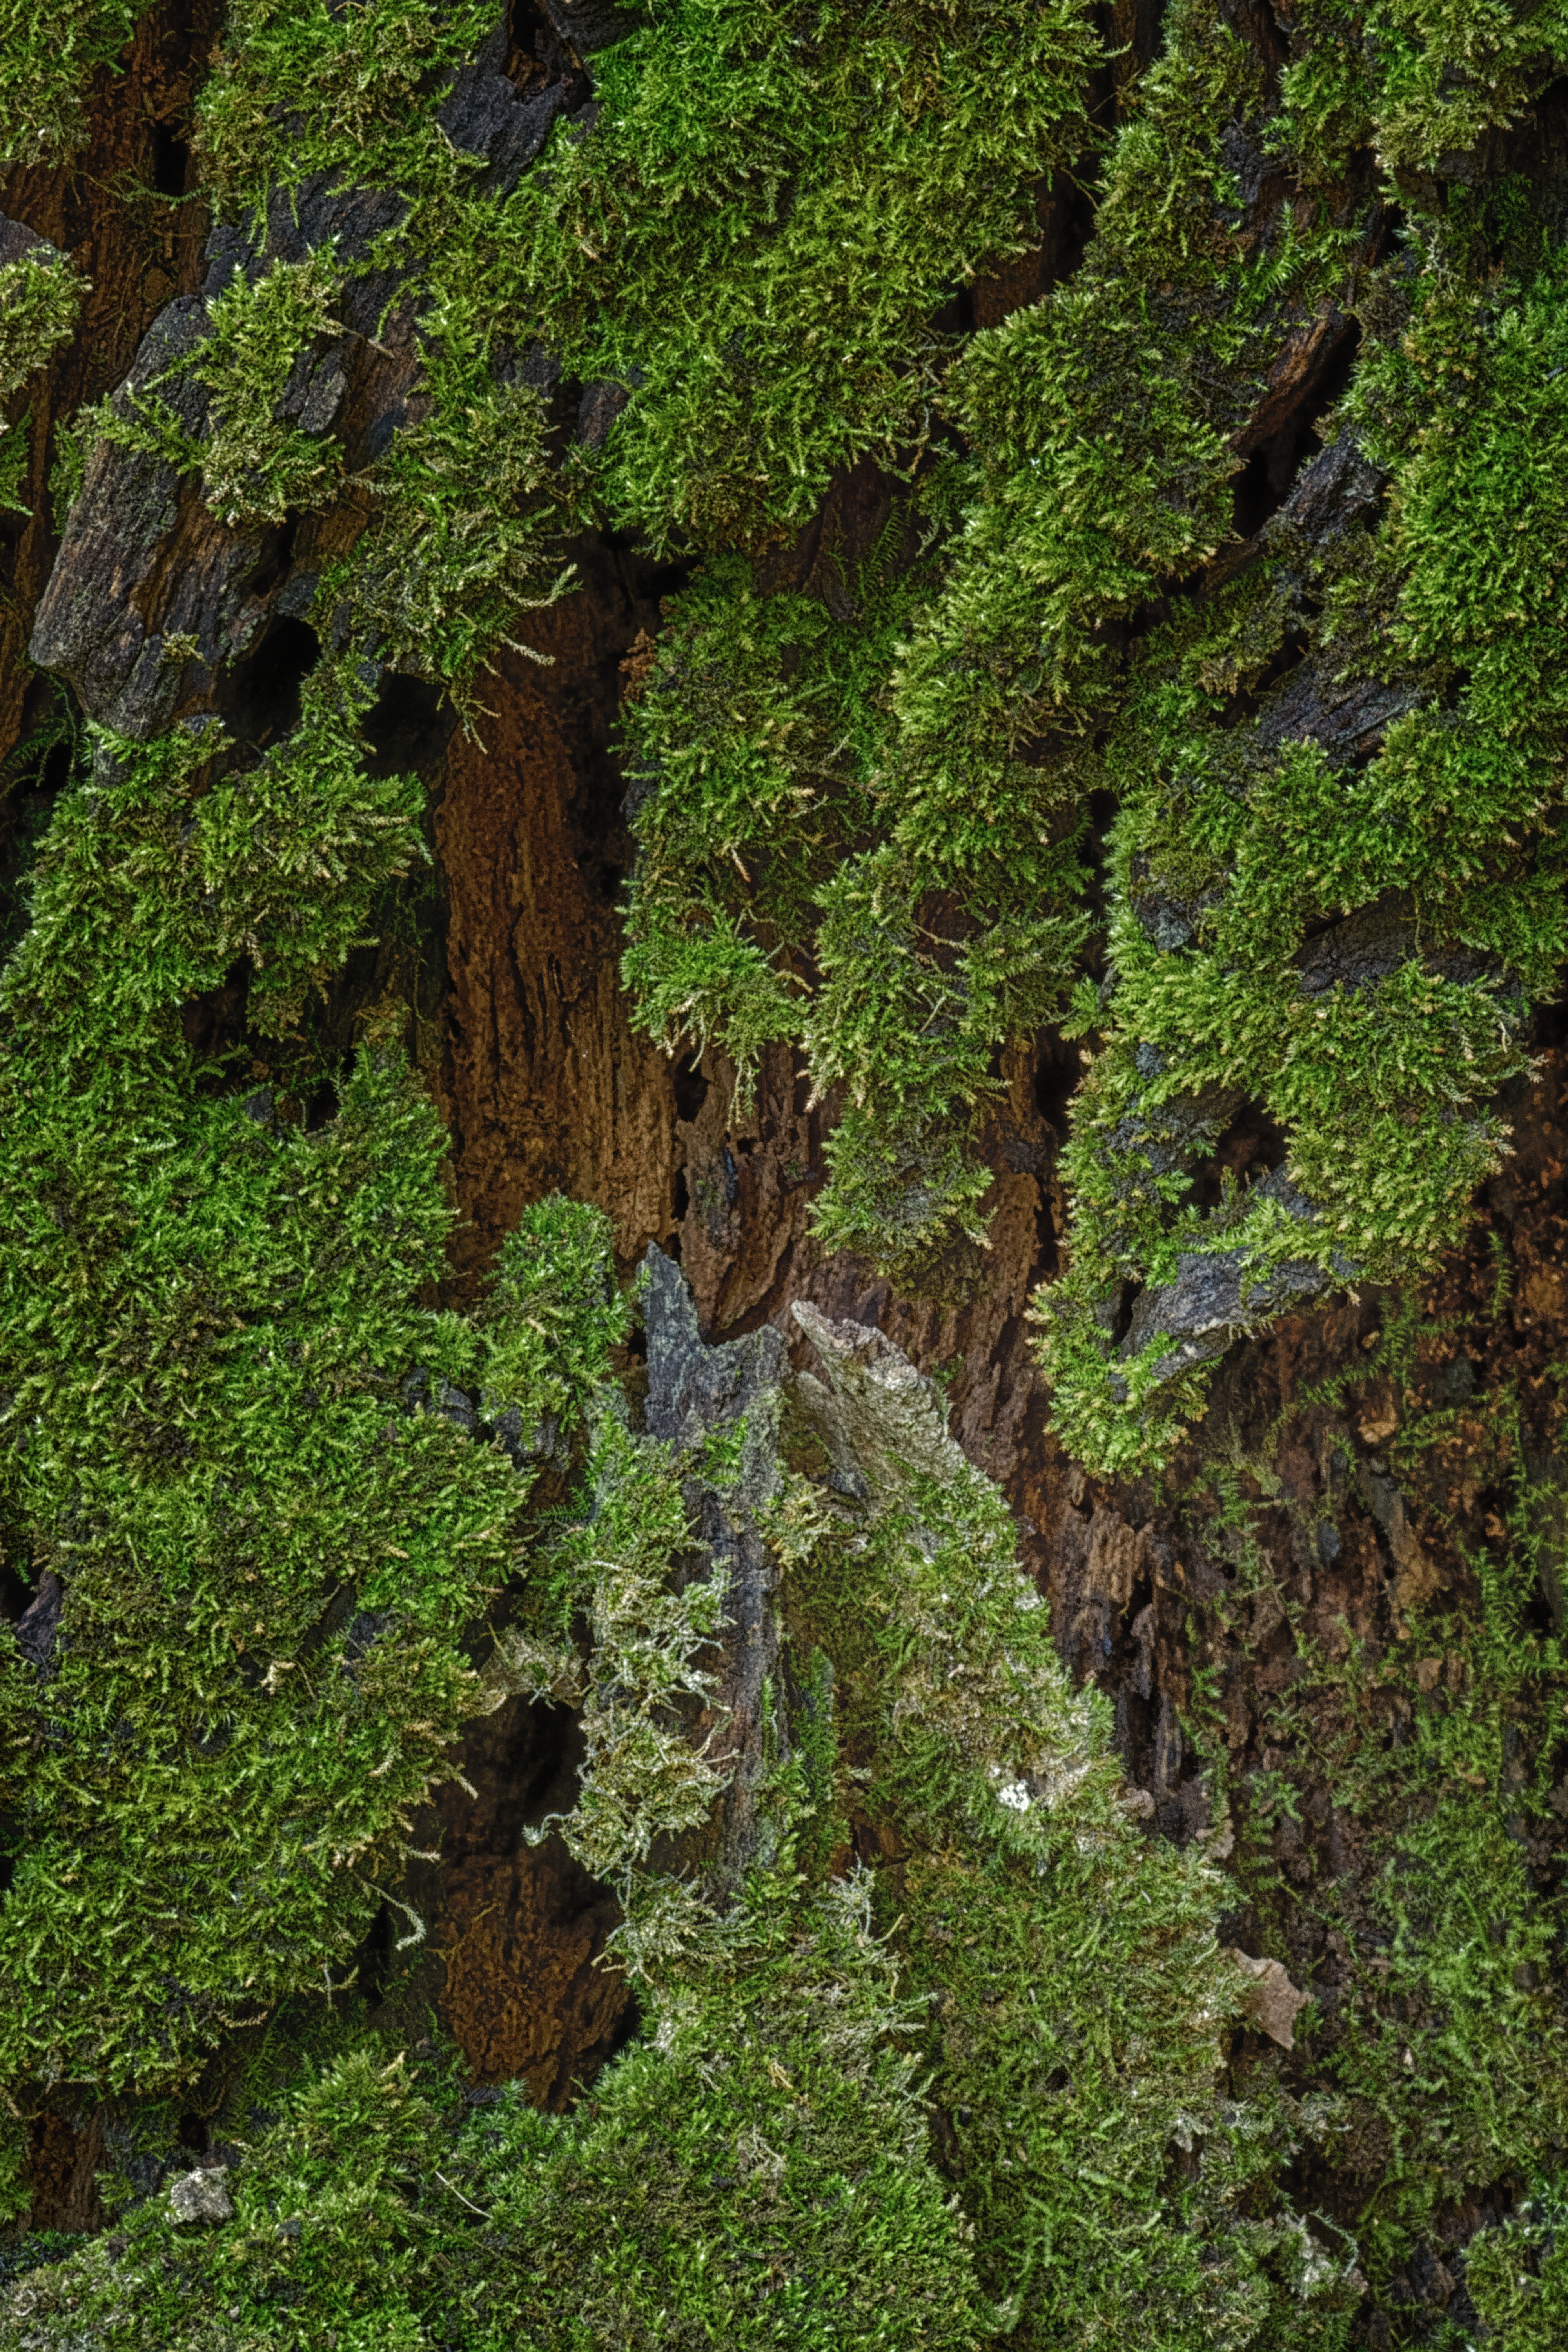 Moss in an old tree stump - 0176